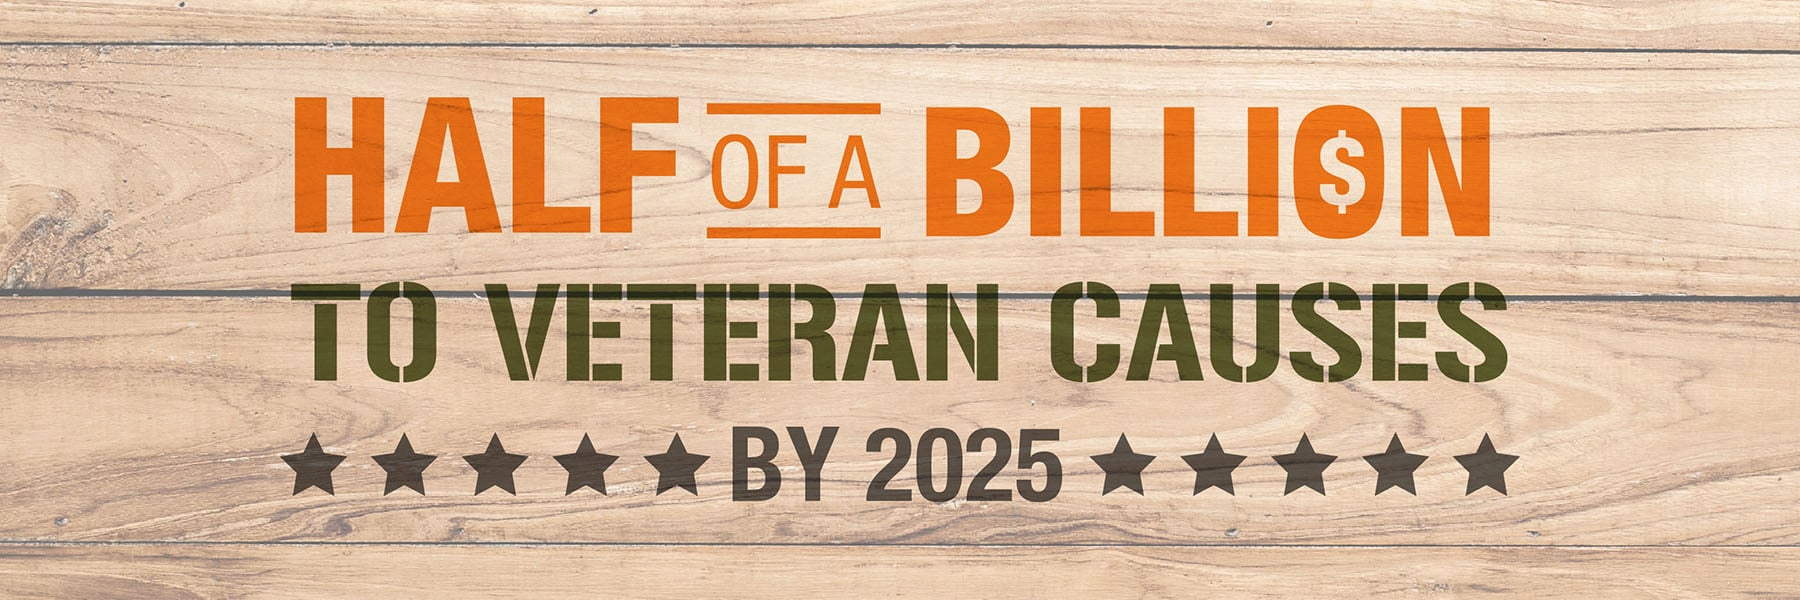 The Home Depot - Half of a Billion to Veteran Causes by 2025